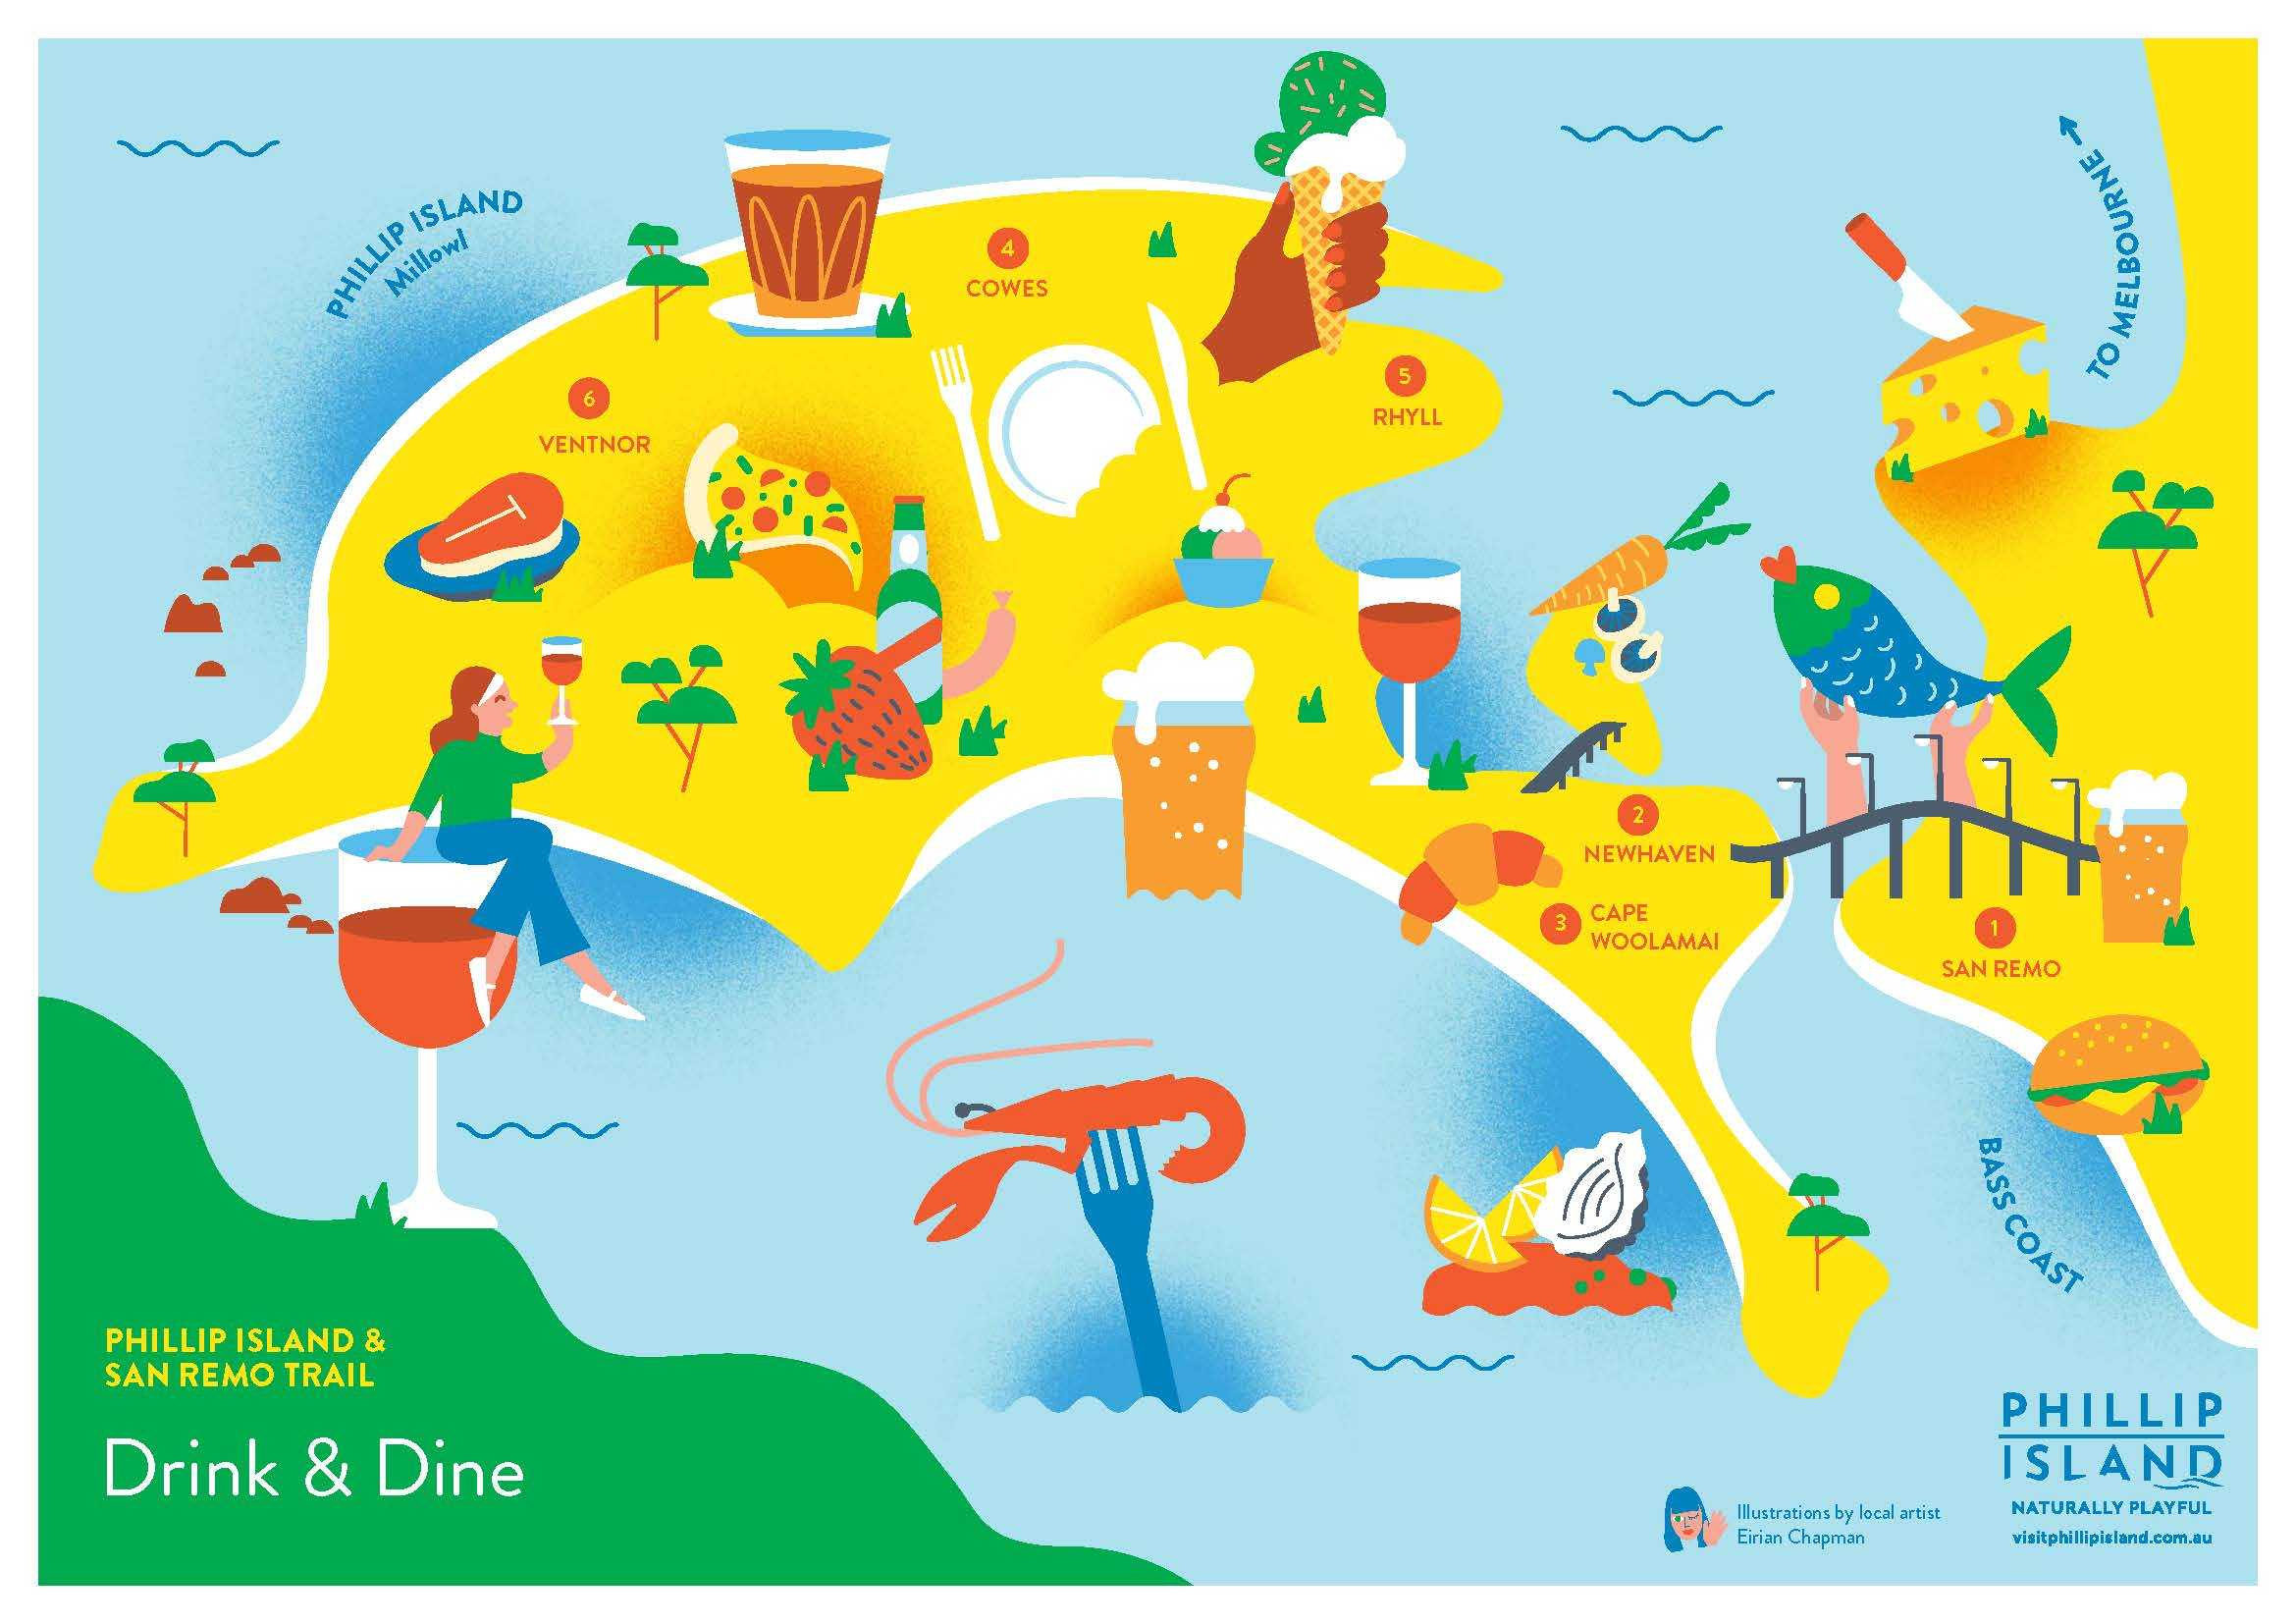 Phillip Island Drink and Dine Trail